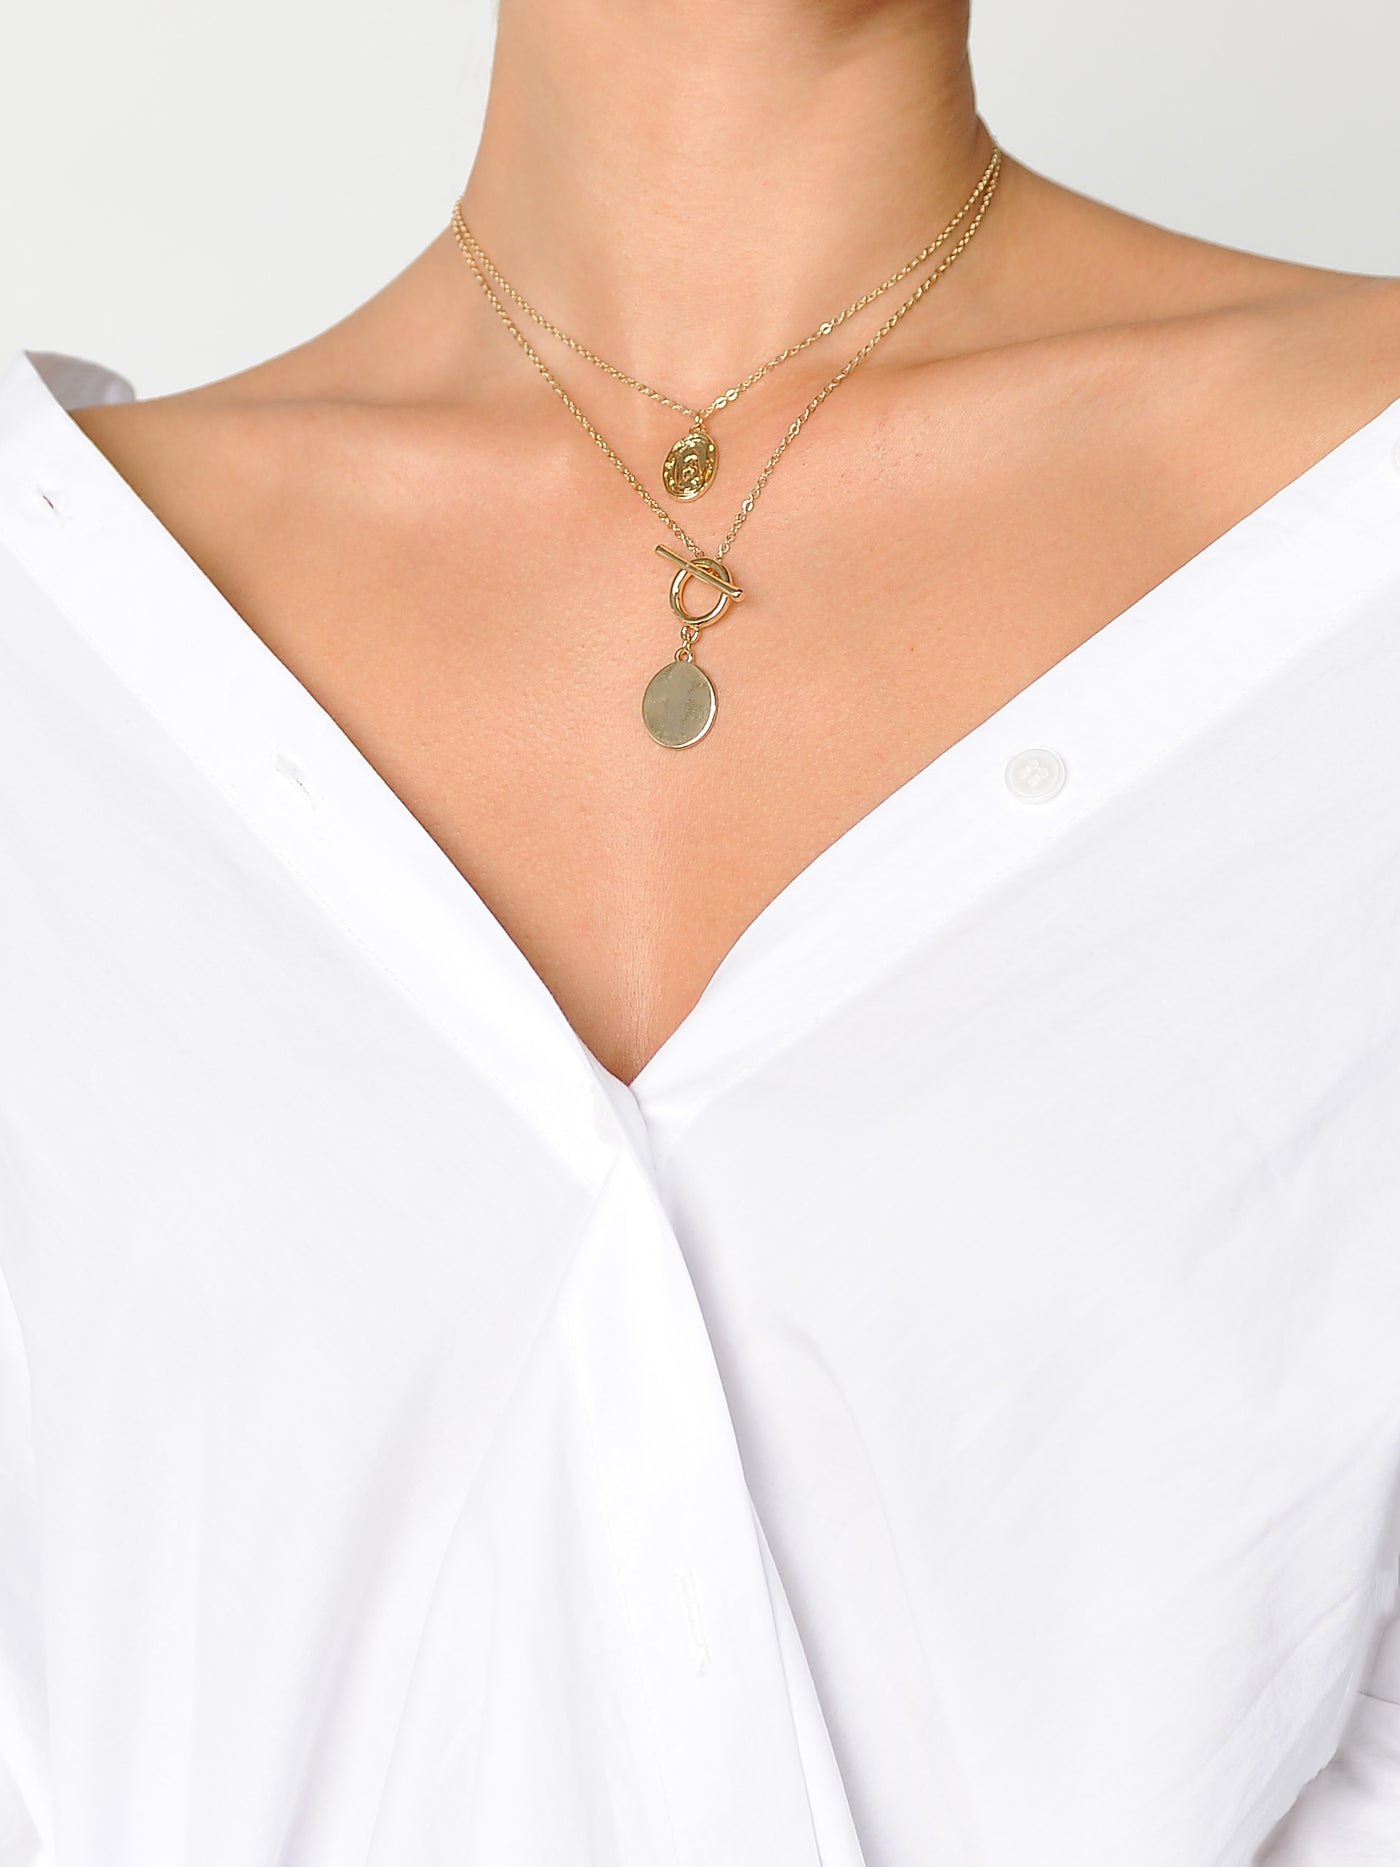 Holy Charm Necklace - Marble Hive